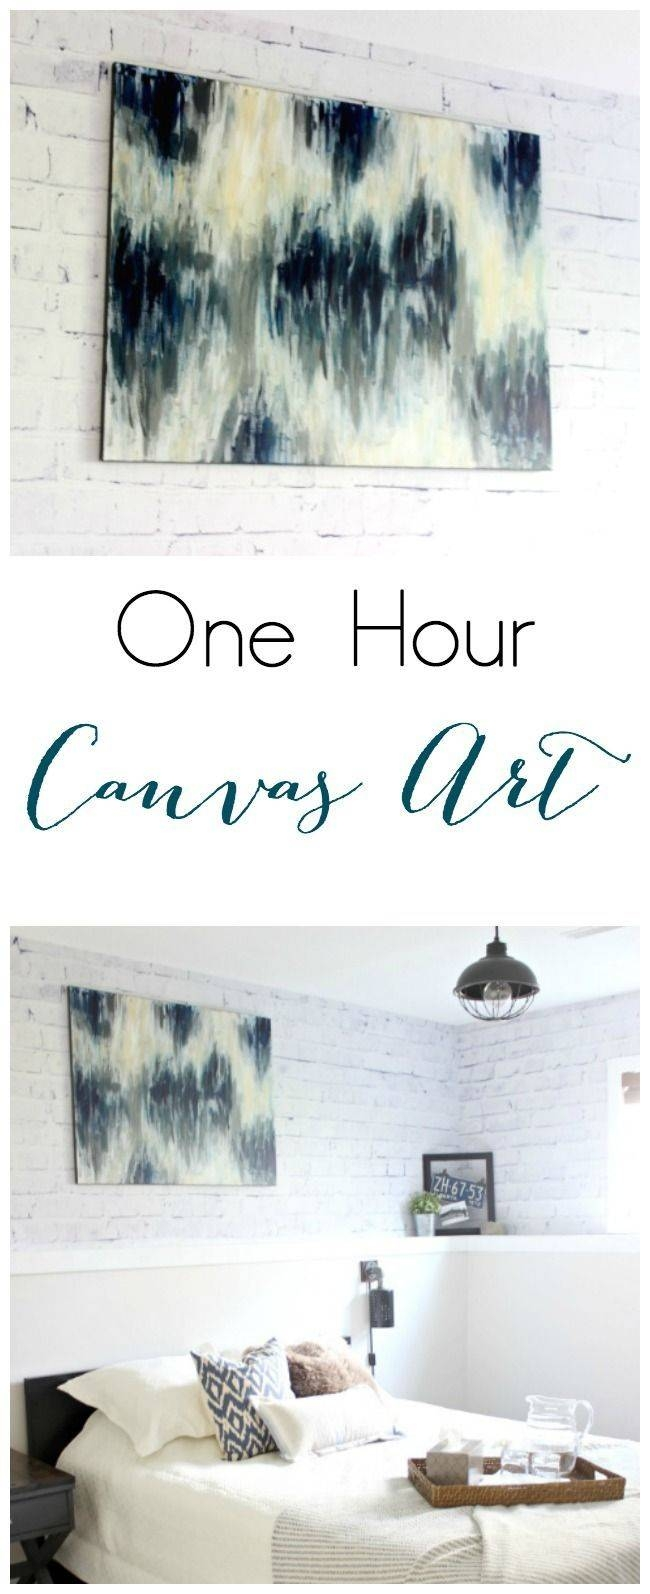 25+ Unique Diy Canvas Ideas On Pinterest | Diy Canvas Art, Puff Pertaining To 2018 Diy Pinterest Canvas Art (View 8 of 25)